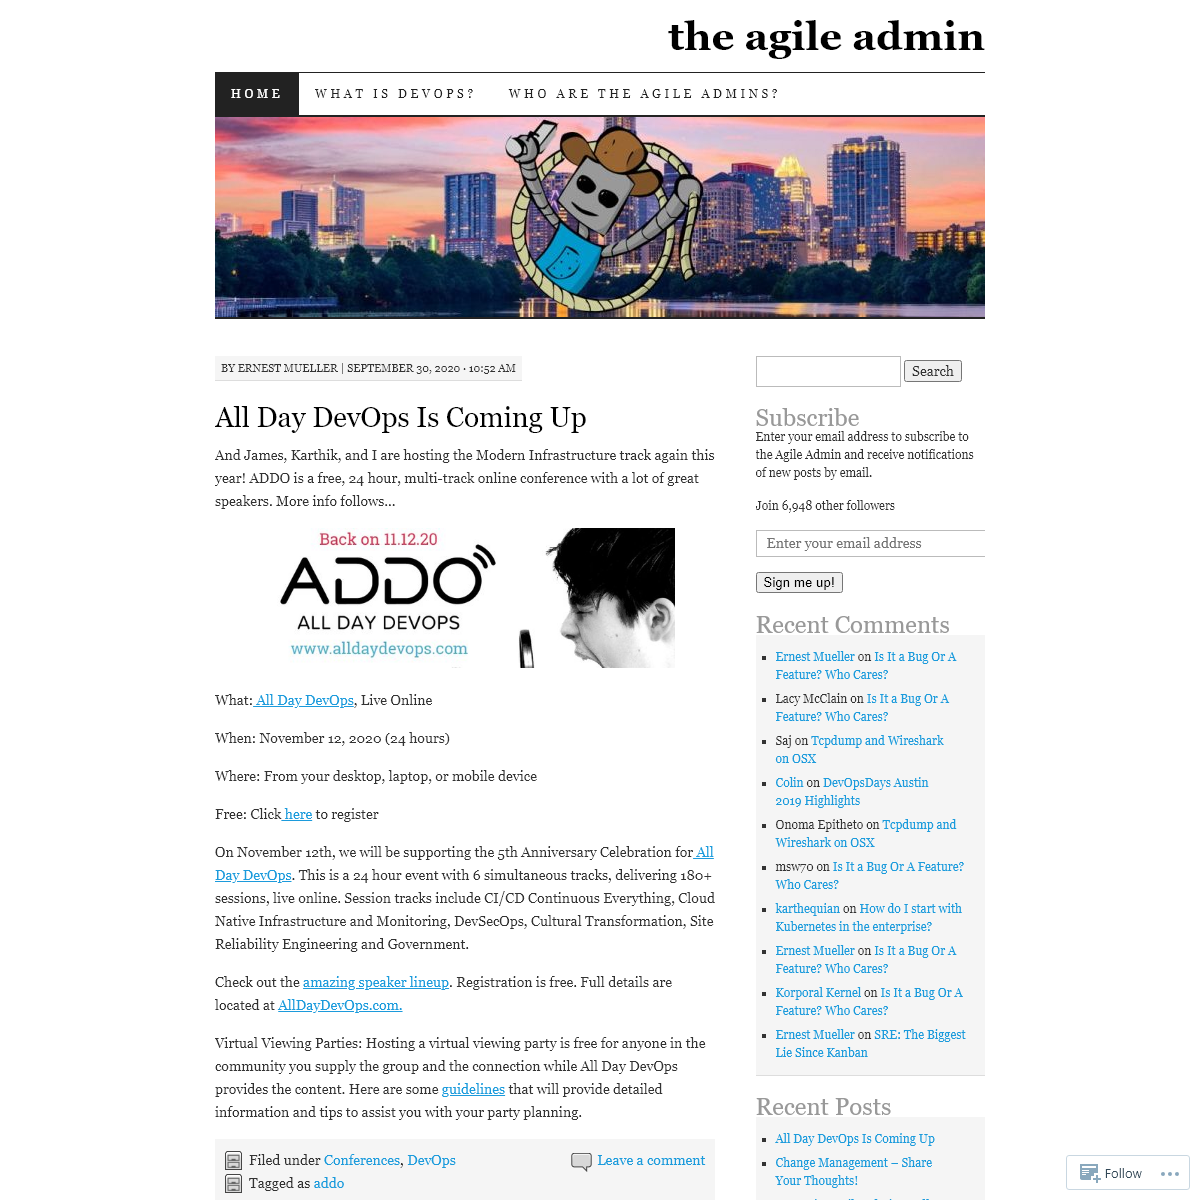 the agile admin - thoughts on agile web operations and devops by @ernestmueller, @wickett, @iteration1 and @bproverb